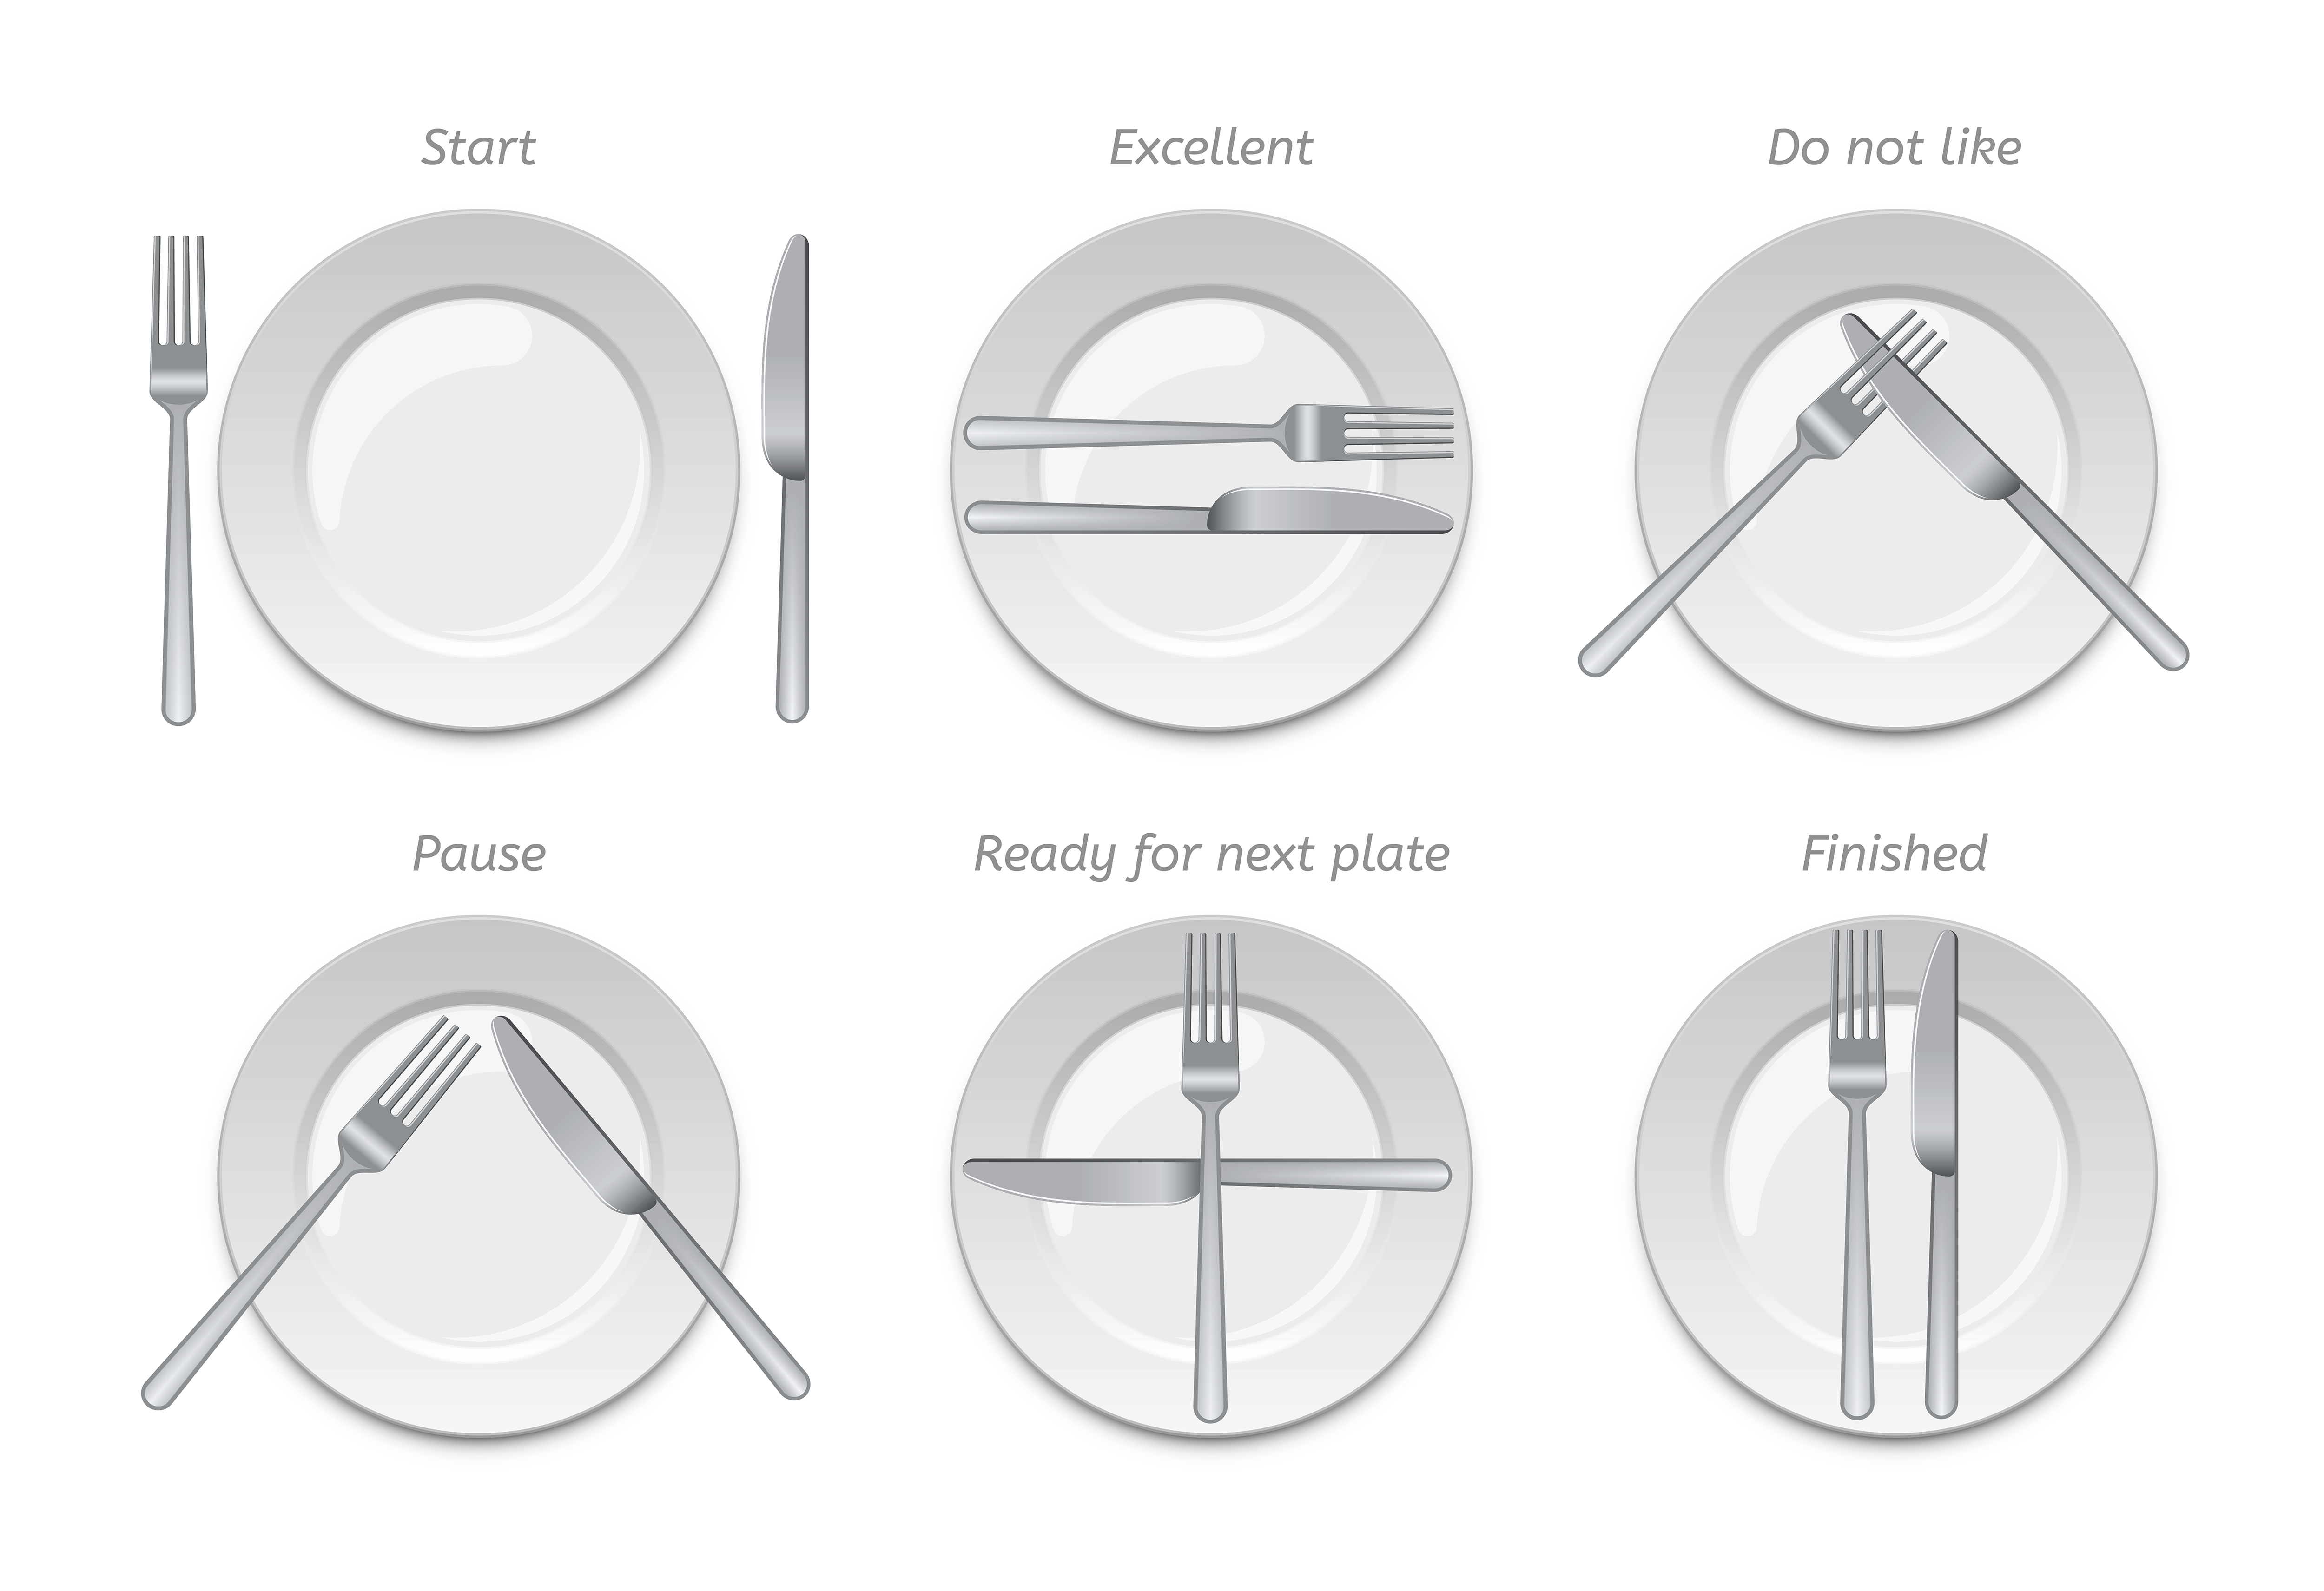 Dining manners